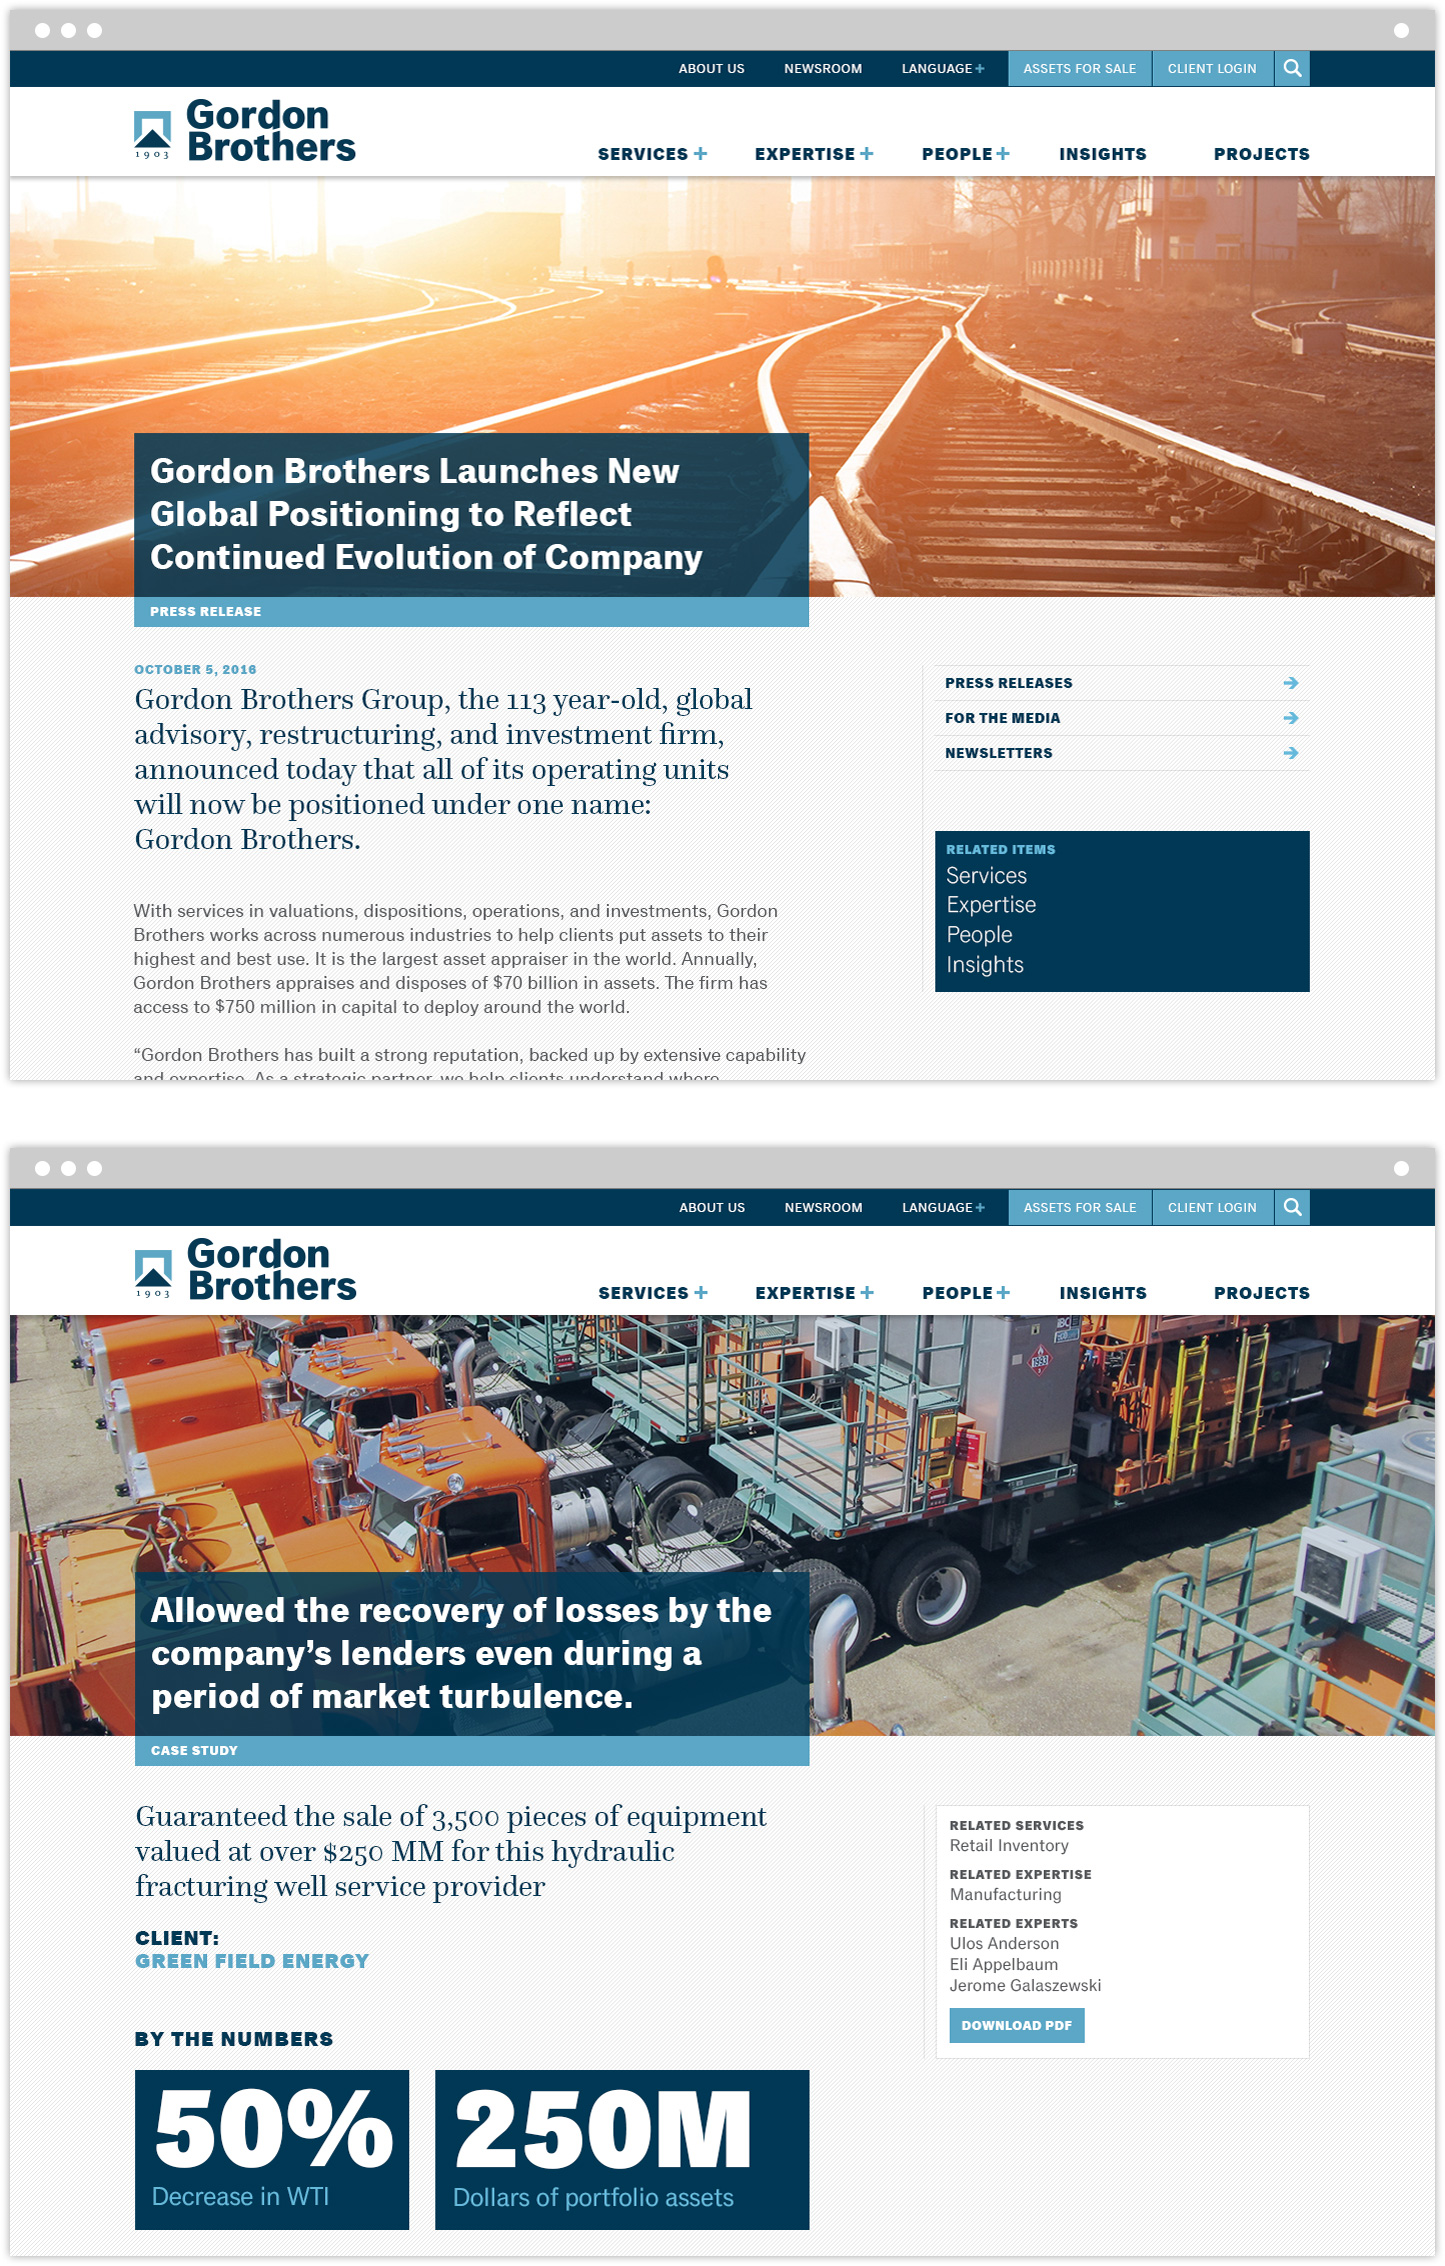 Gordon Brothers Launches New Global Positioning to Reflect Continued Evolution of Company press release interior page